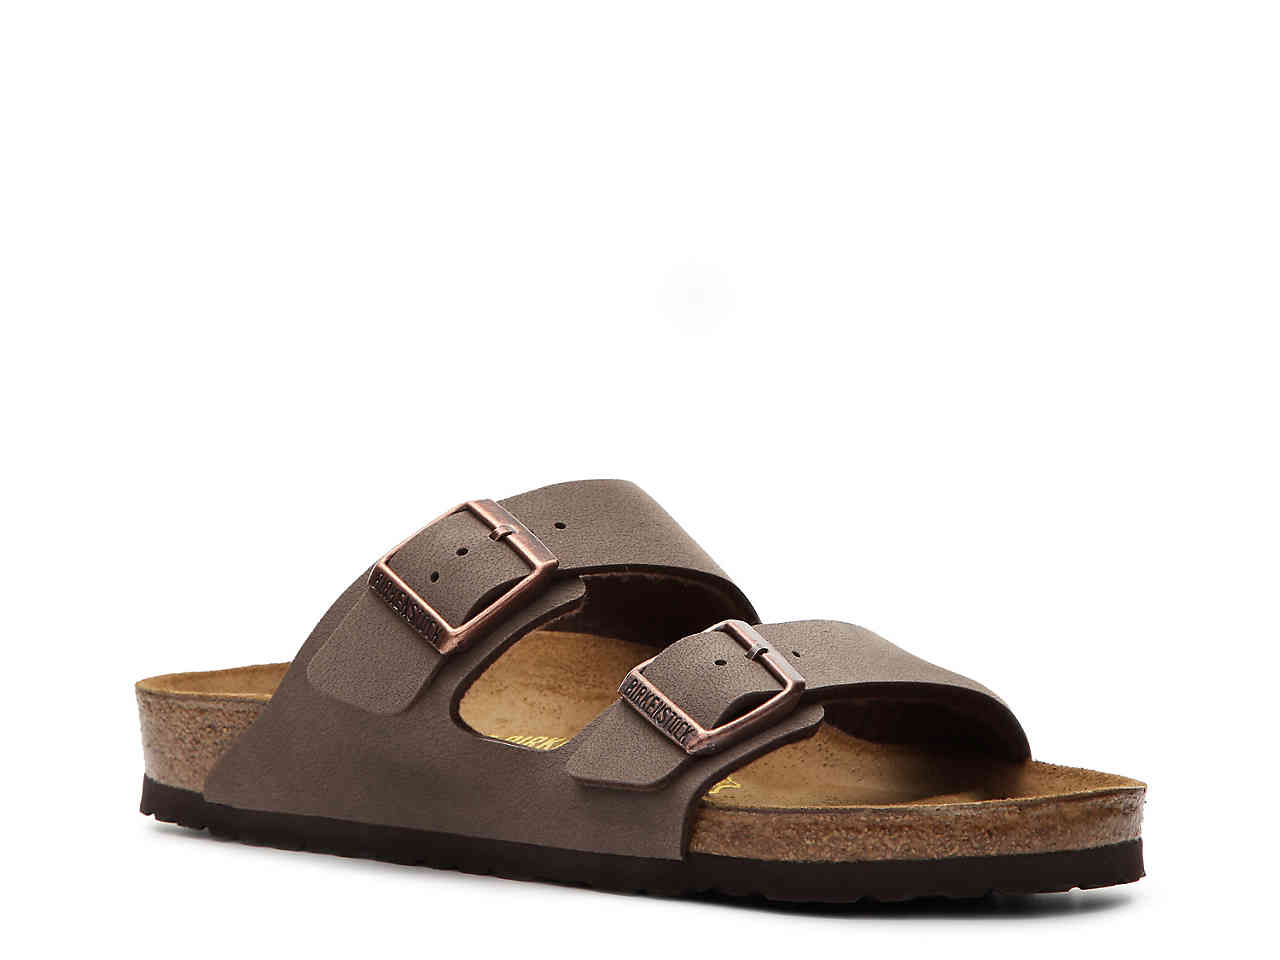 ARIZONA BIRKO-FLOR SLIDE SANDAL - MEN'S